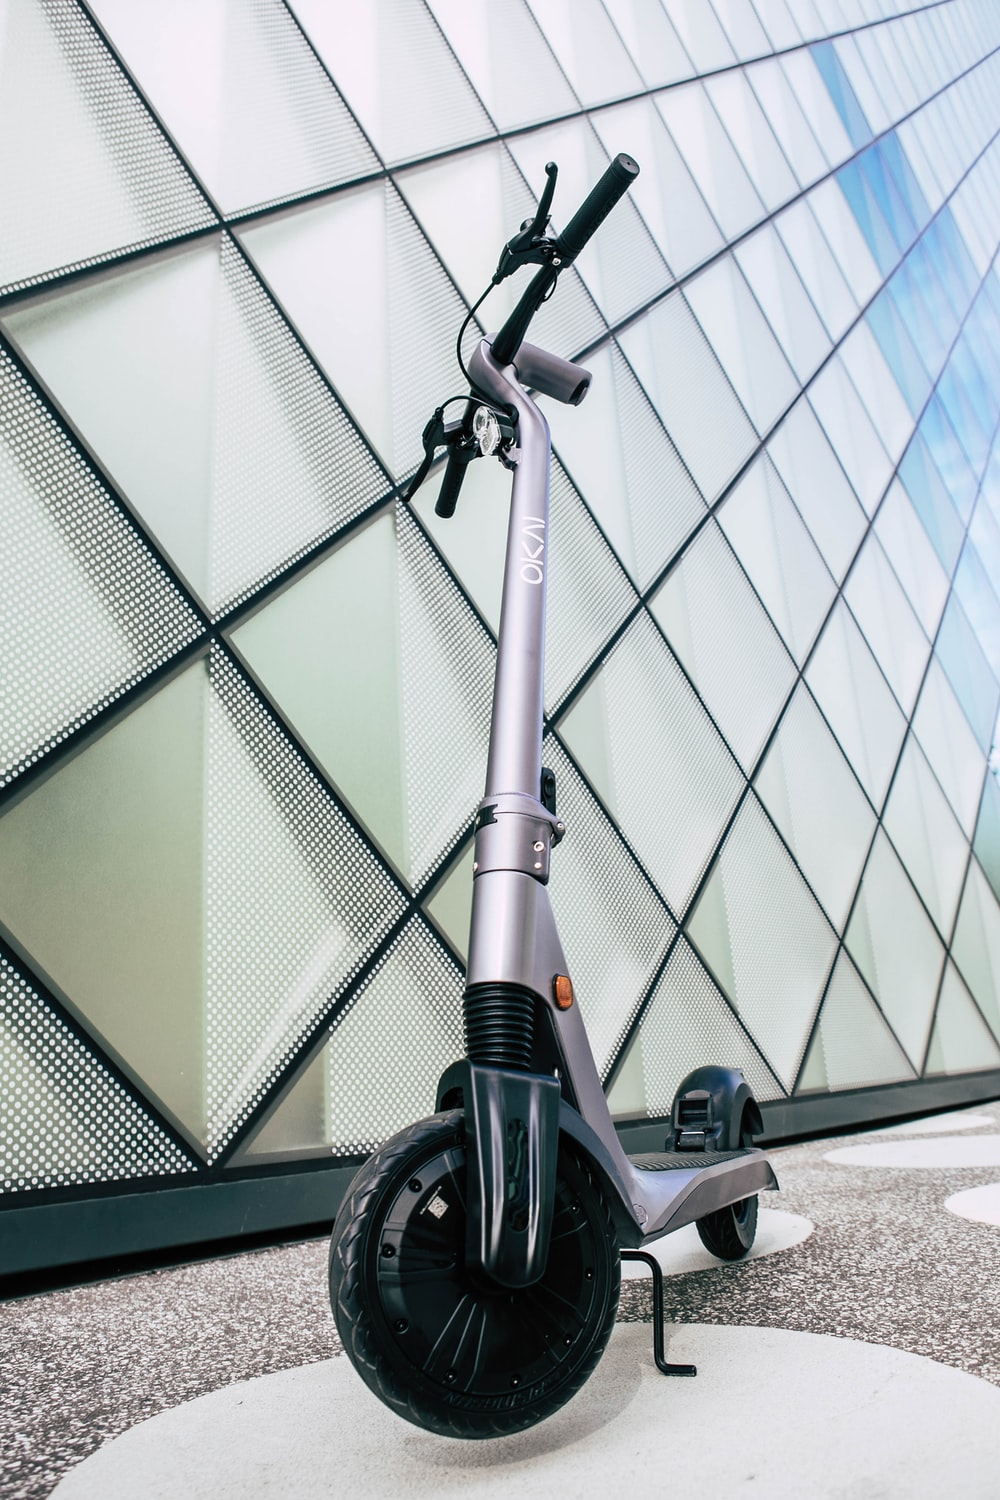 black and gray bicycle near glass wall building